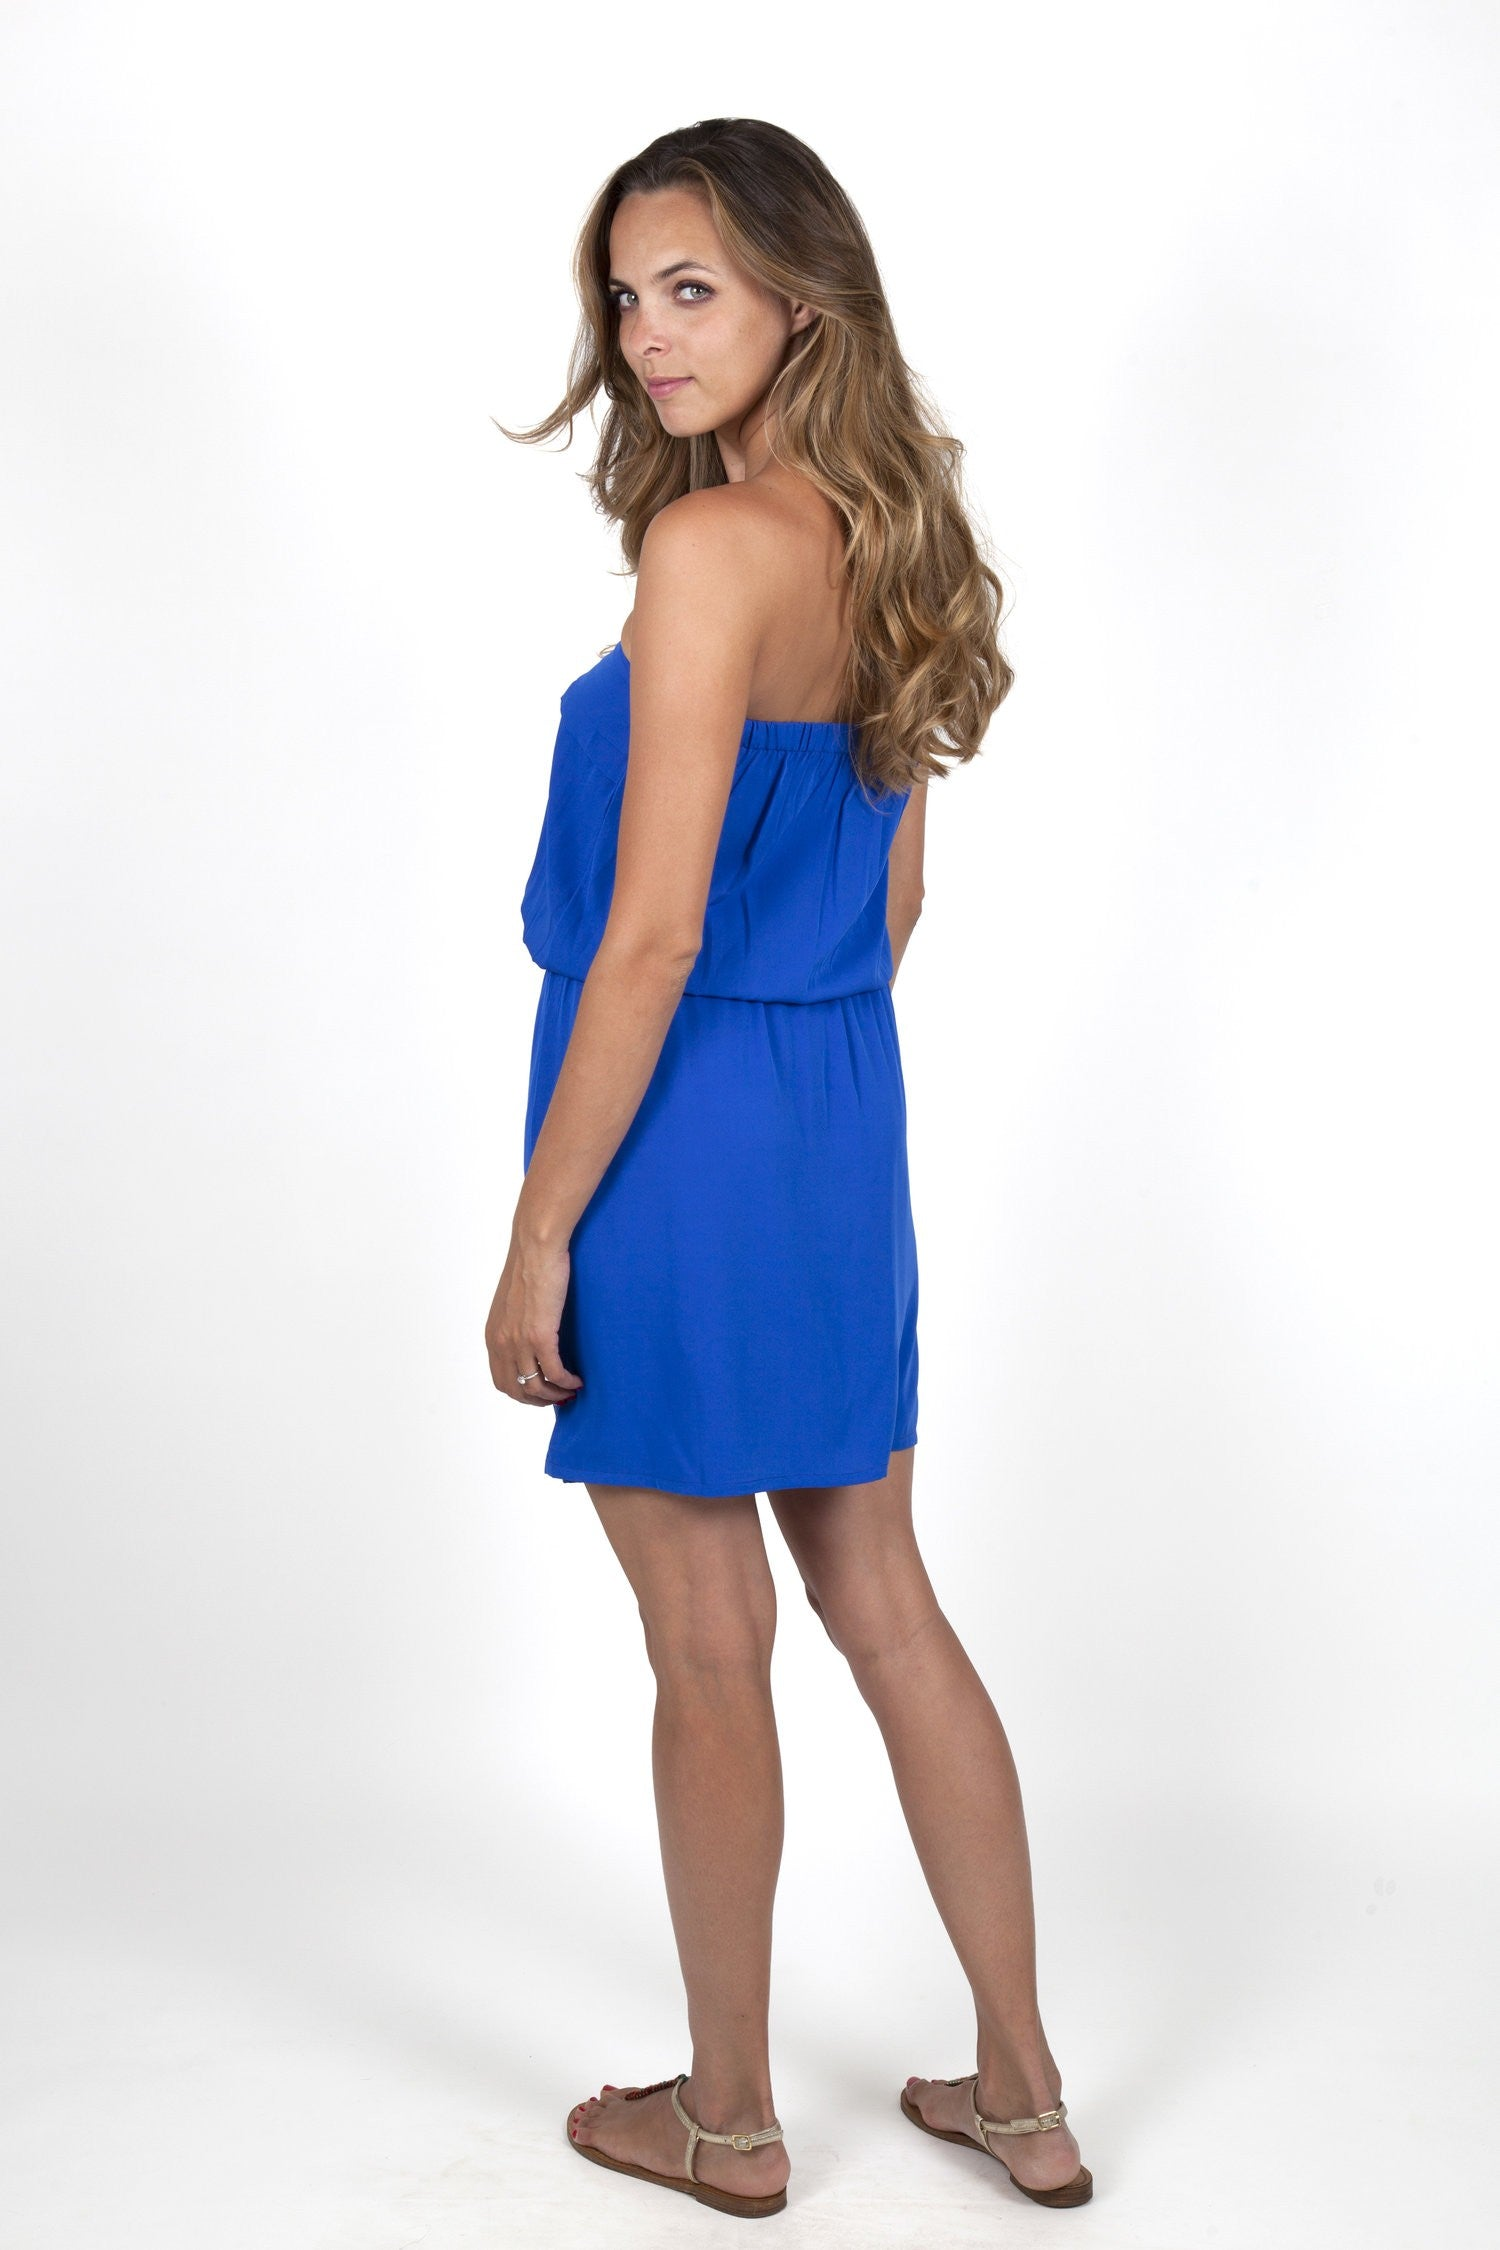 Julie Electric Blue Dress Capsule Collection By Juliette - Dresses